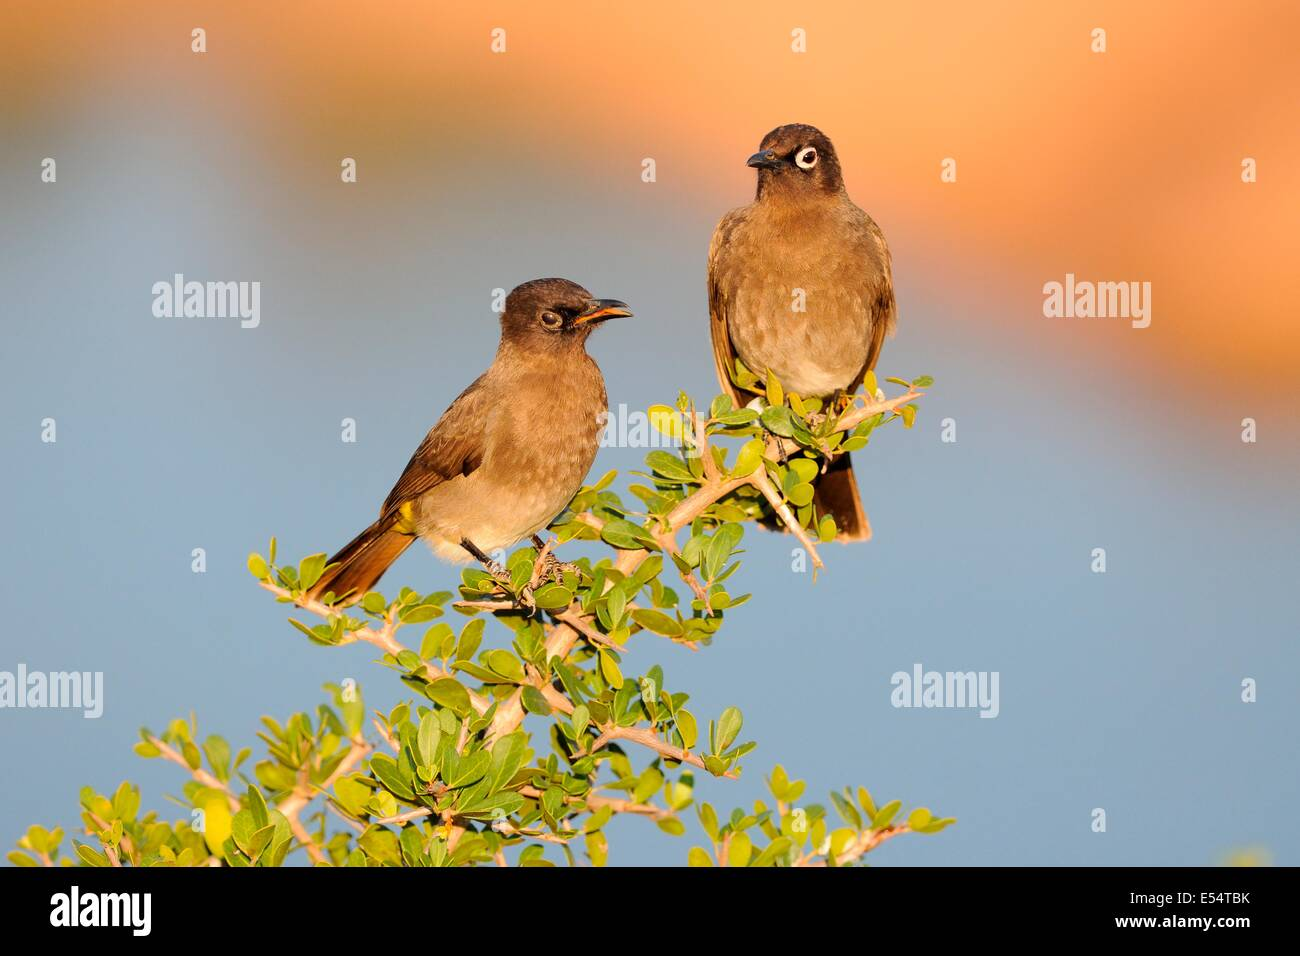 Two Cape Bulbuls (Pycnonotus capensis), juvenile on the left, Addo National Park, Eastern Cape, South Africa, Africa Stock Photo